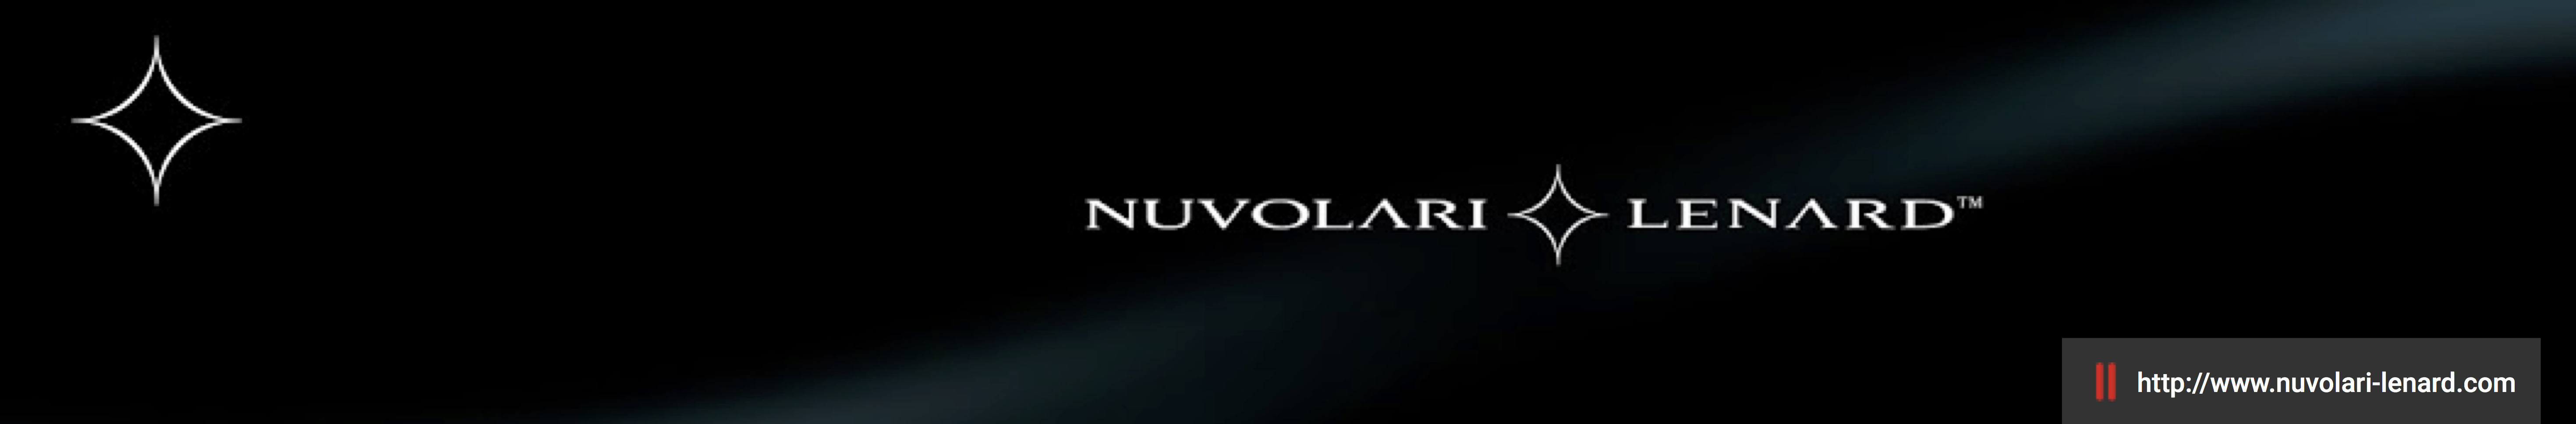 nuvolari lenard-1.png  7 of the Coolest YouTube Banners We've Ever Seen nuvolari 20lenard 1